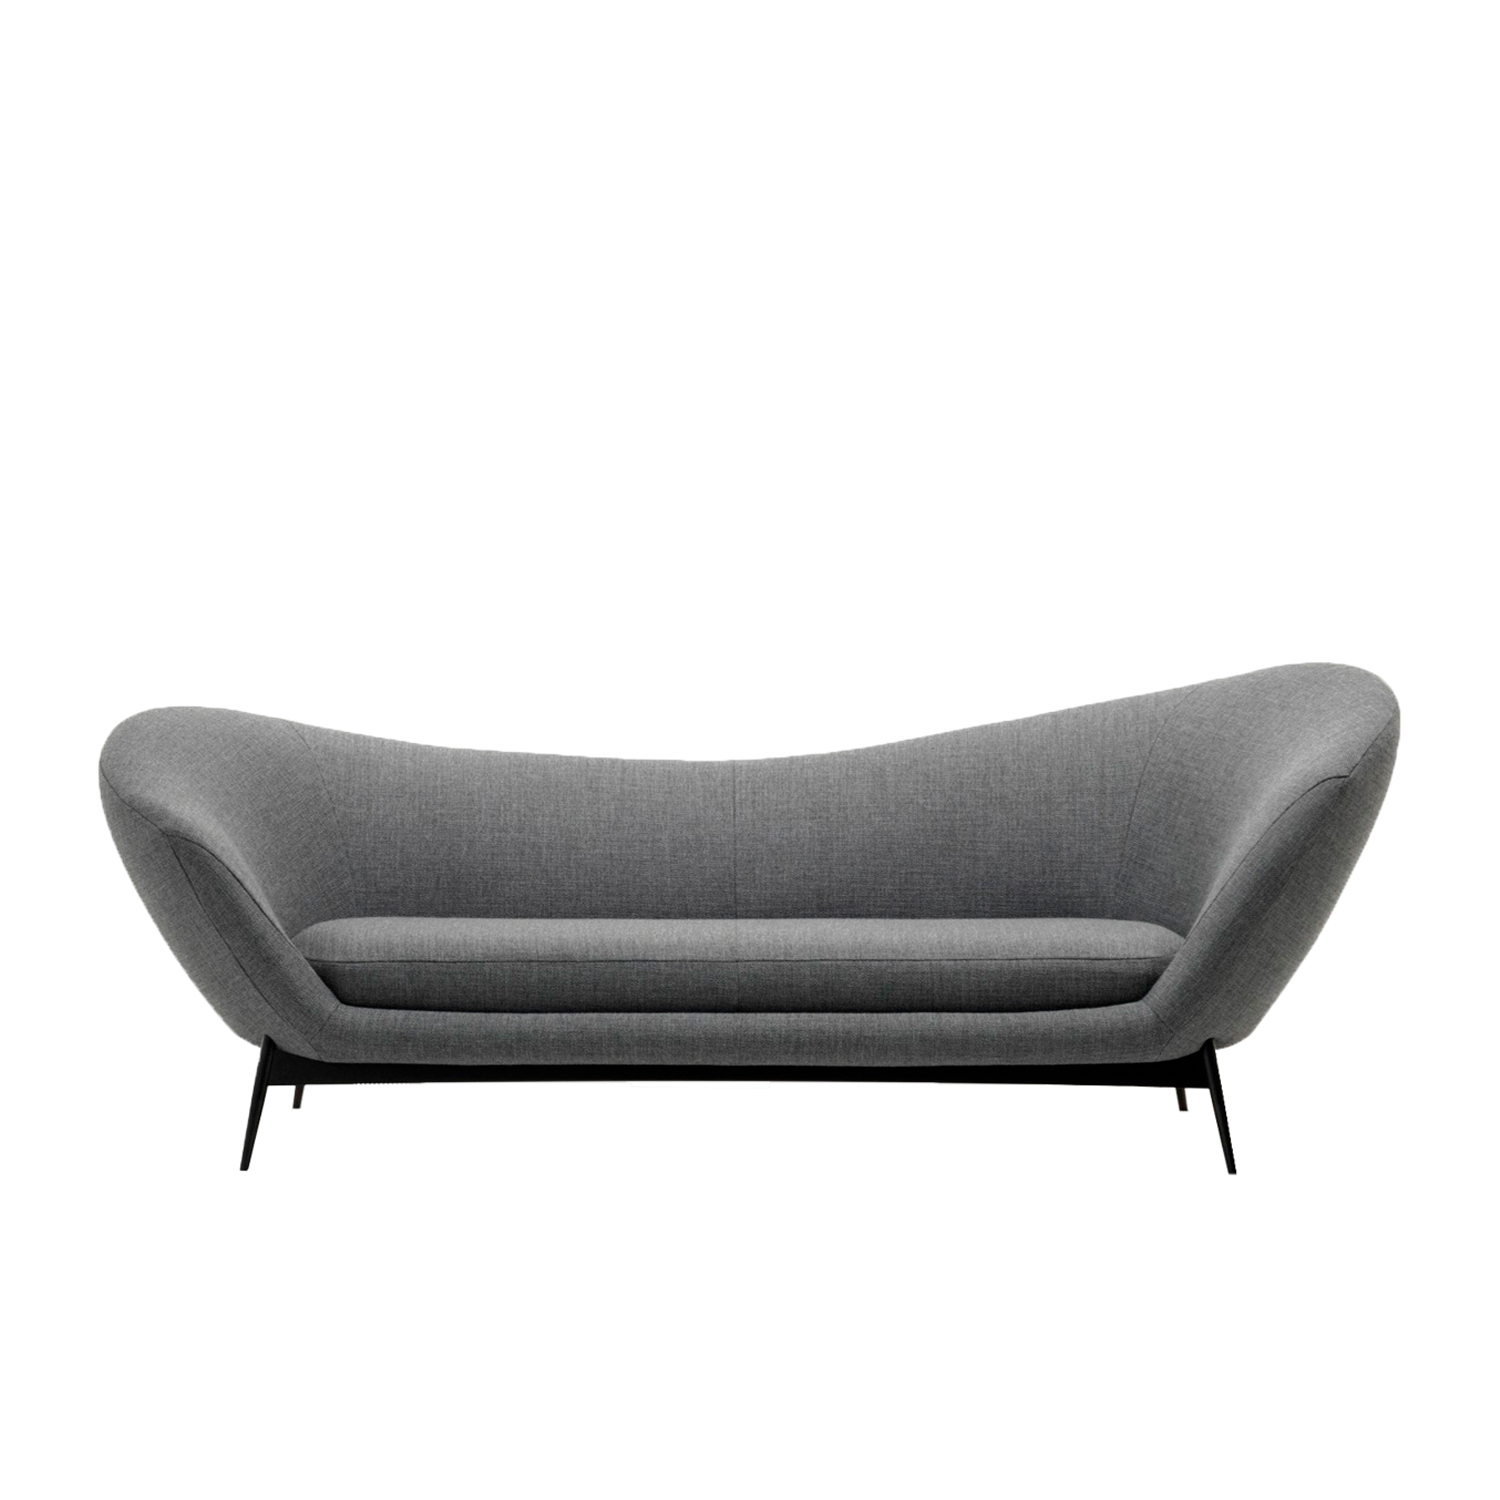 Oltremare Sofa - Within its 225cm, Oltremare sofa offers a sweet stylistic landscape and, despite its contained dimensions, it allows for various seating solutions – some unexpected – all extremely comfortable, a characteristic that makes it perfect ergonomically.‎ Its seat is soft and the backrest, rigid at first glance, is in fact very welcoming.‎